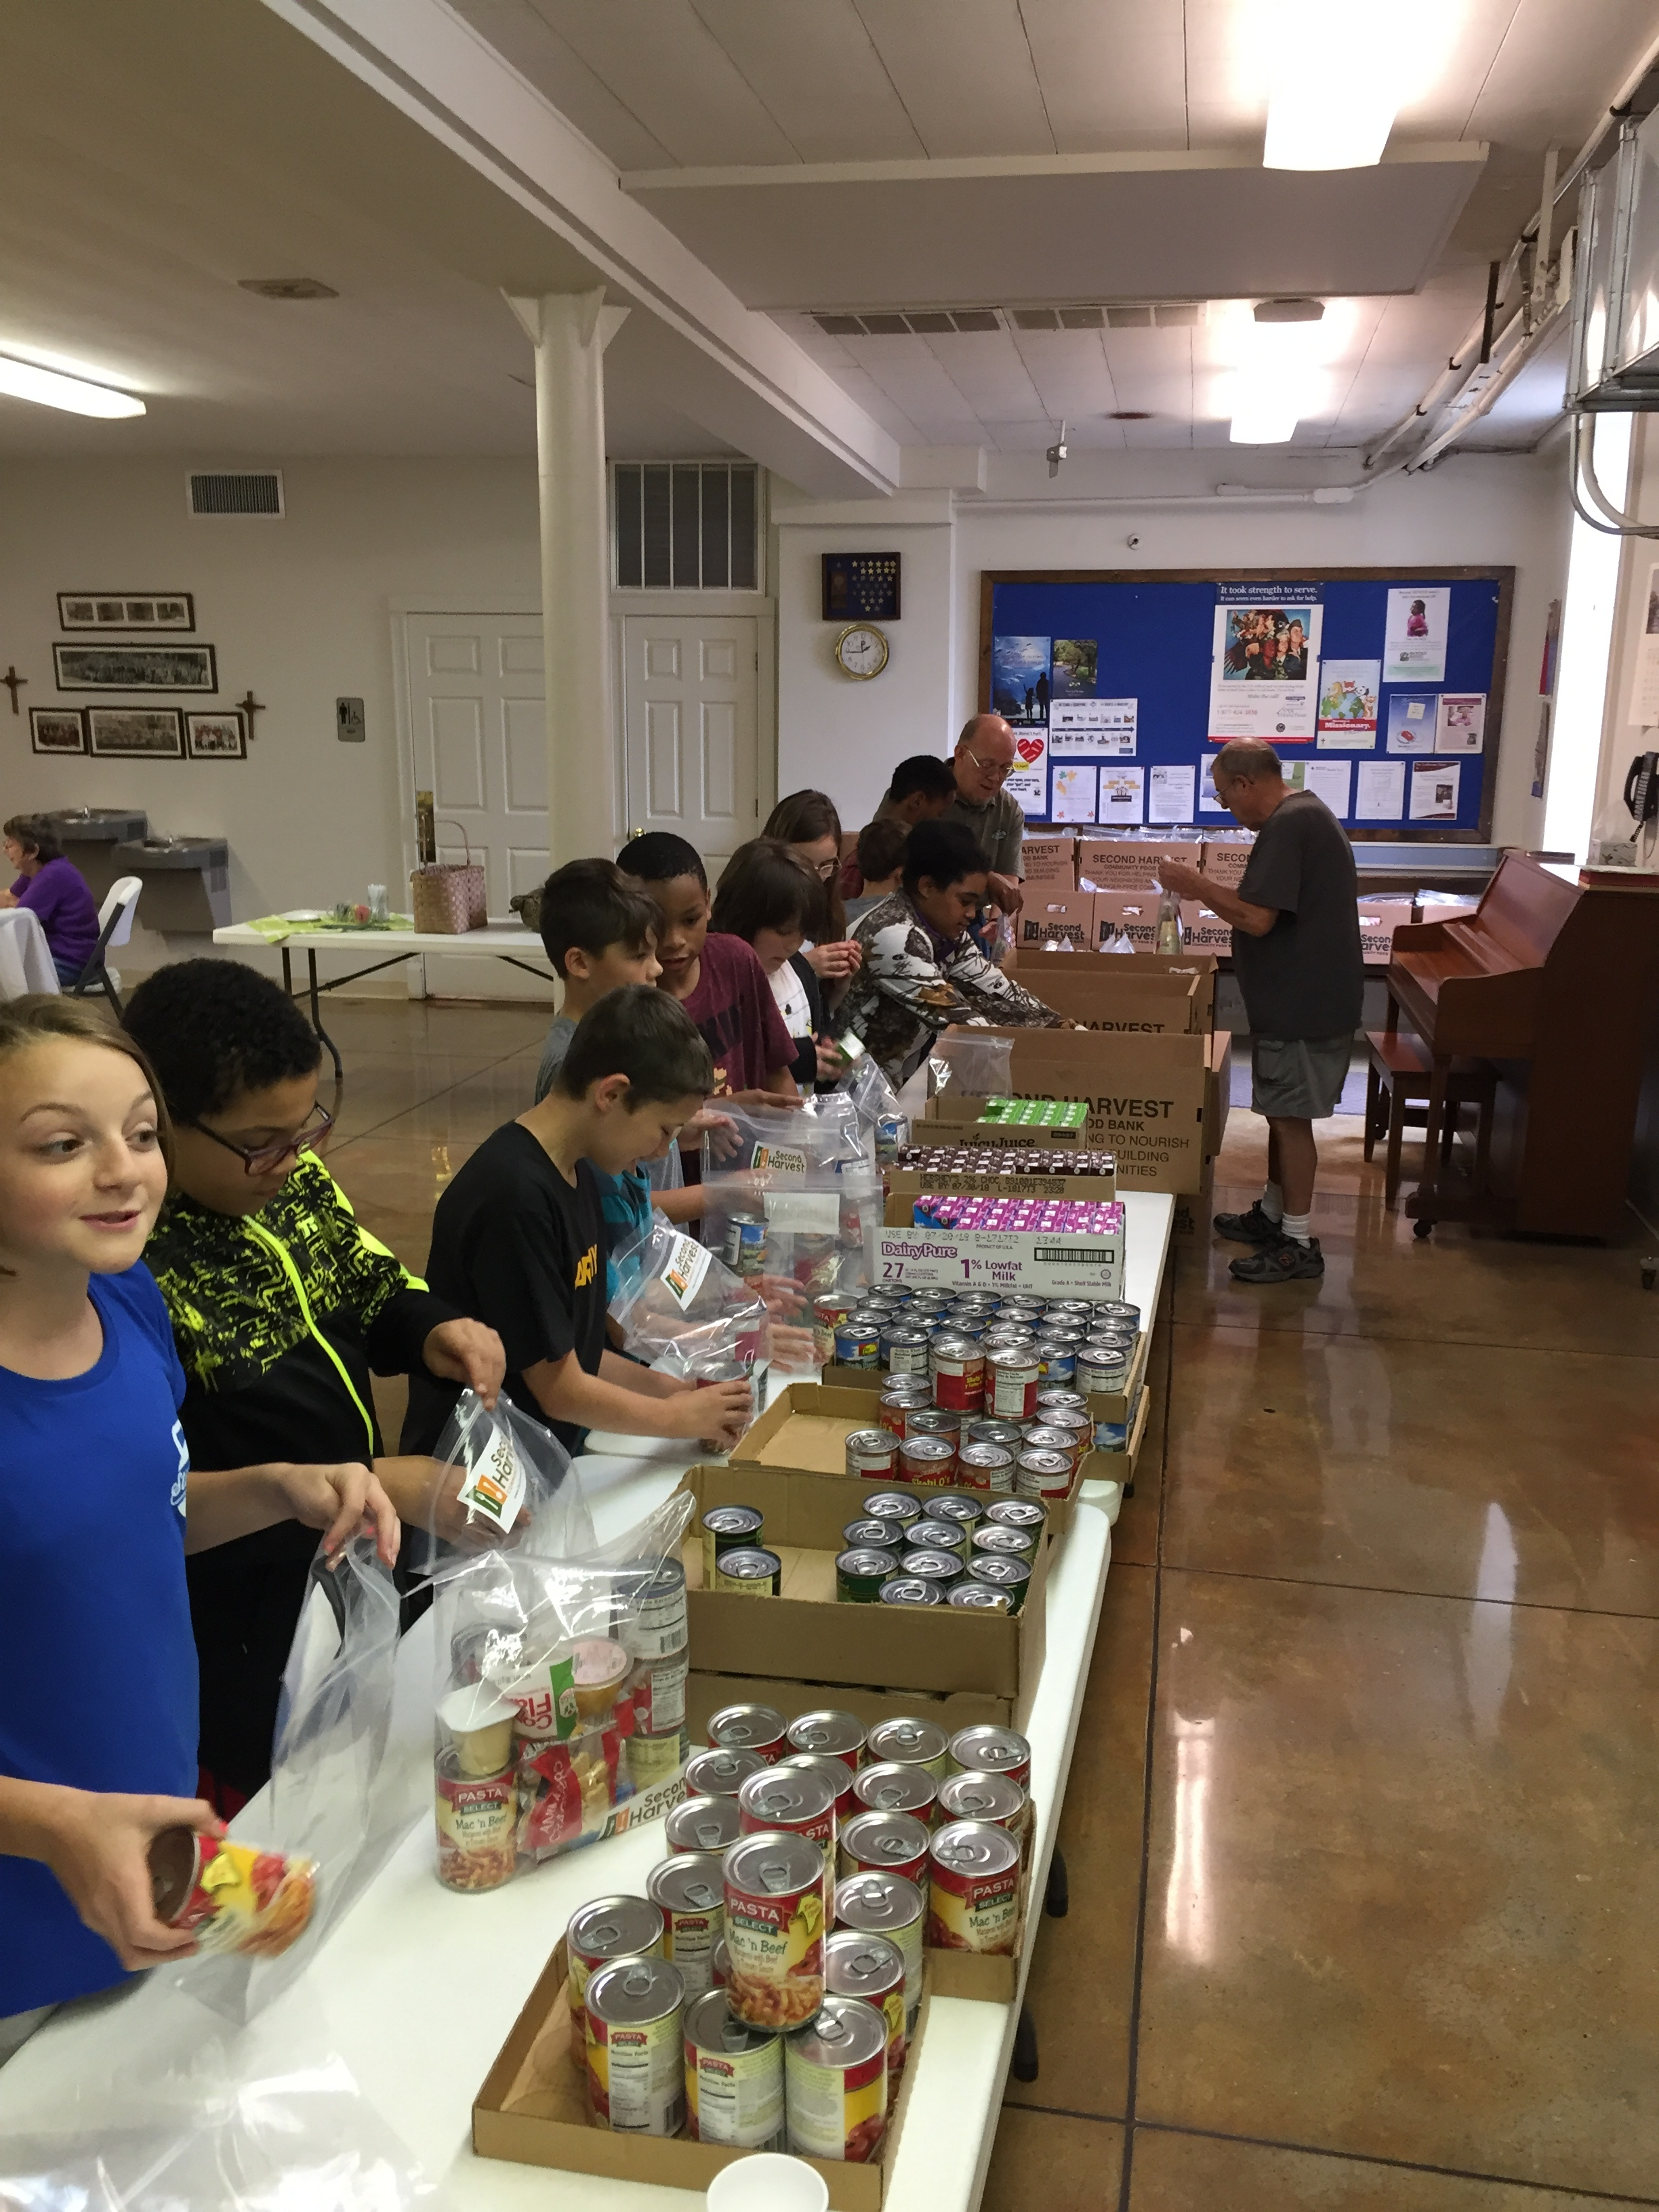 Our Goal - Our goal is to act as the link between community organizations and individuals who want to help hungry elementary school children in our schools. Through financial donations we purchase food from Second Harvest Community Food Banks. Volunteers then sort, pack and deliver a backpack of food to hungry children each weekend through their respective schools.